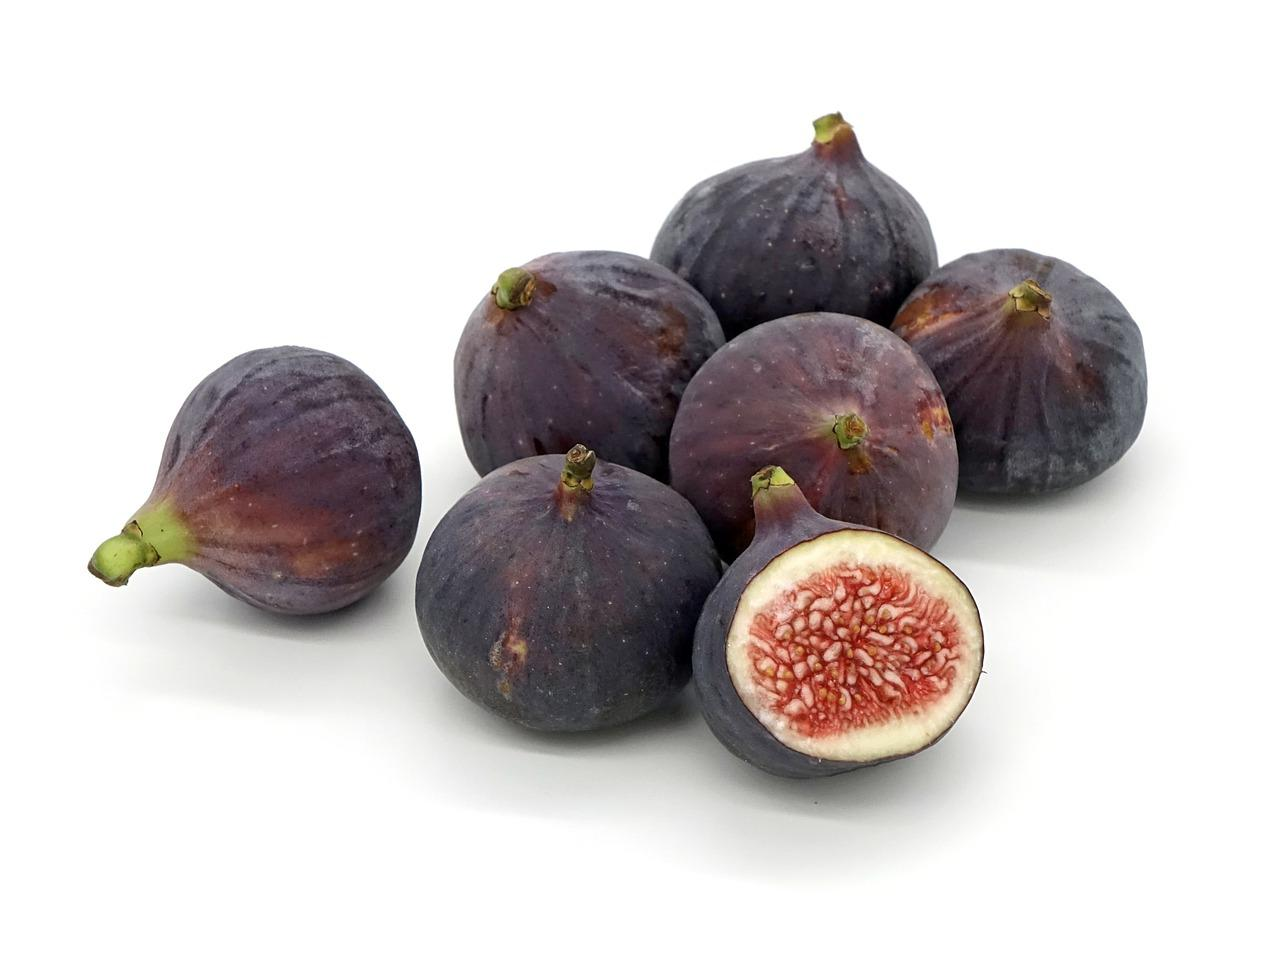 Advantages and disadvantages of eating figs in pregnancy